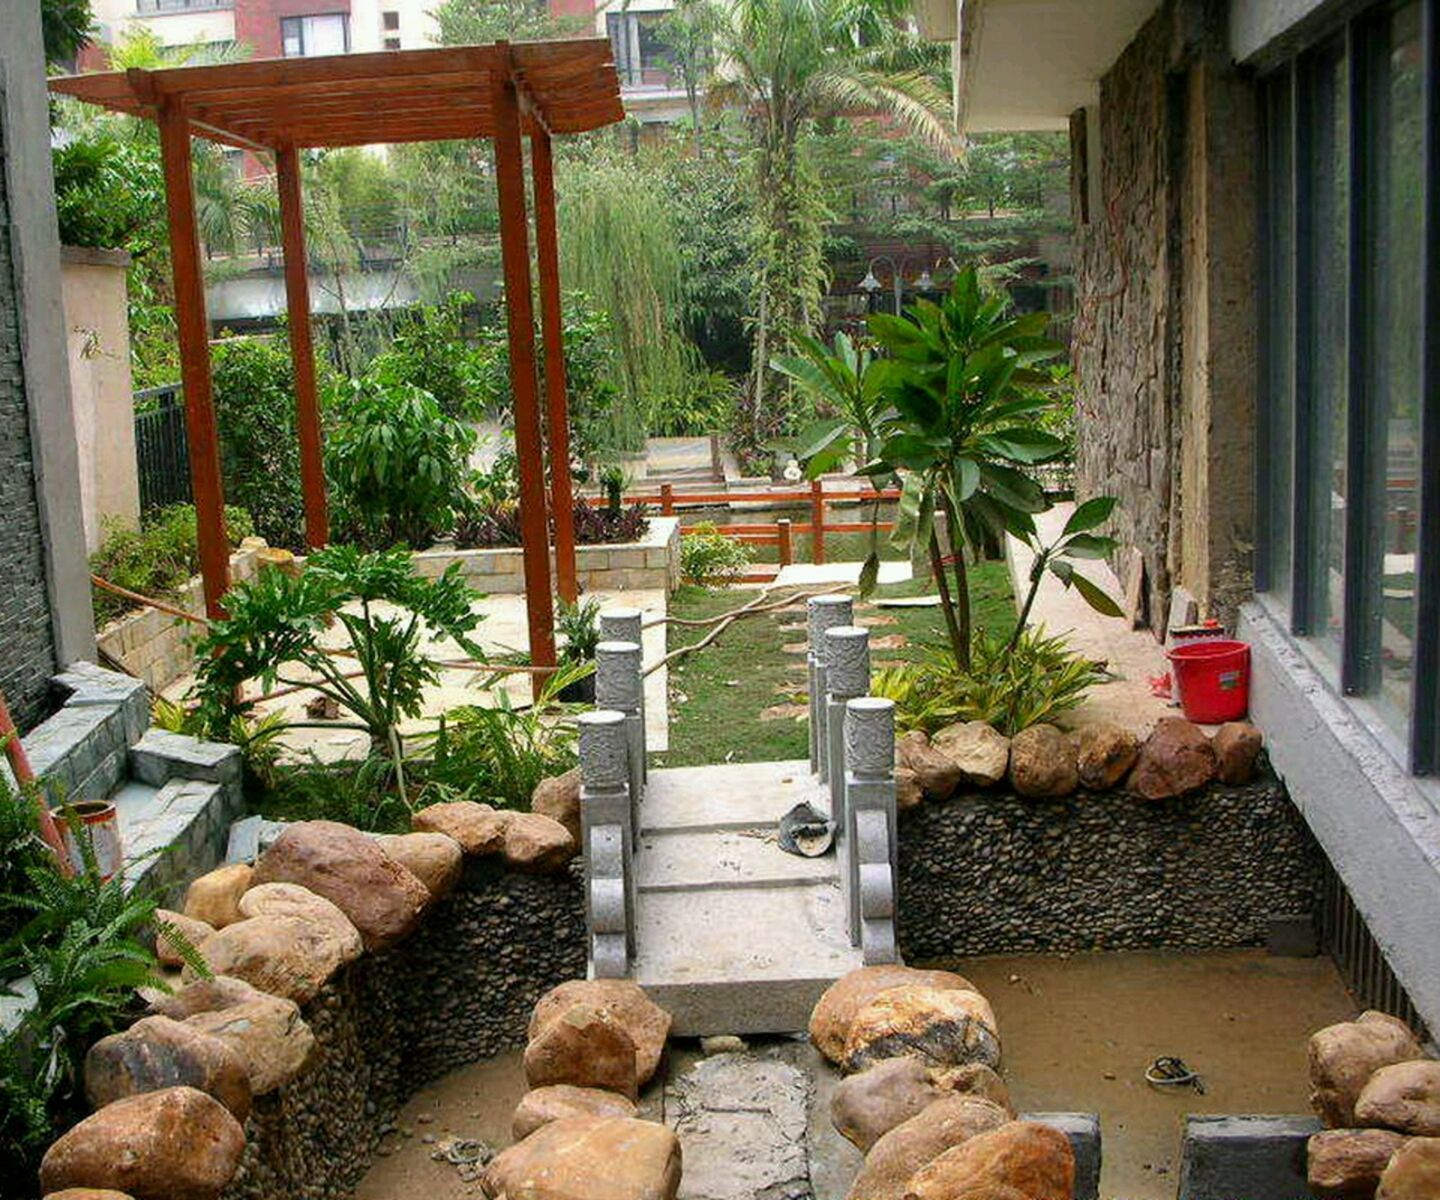 Top 15 Home And Garden Design Ideas For Everyone Who Want To Have